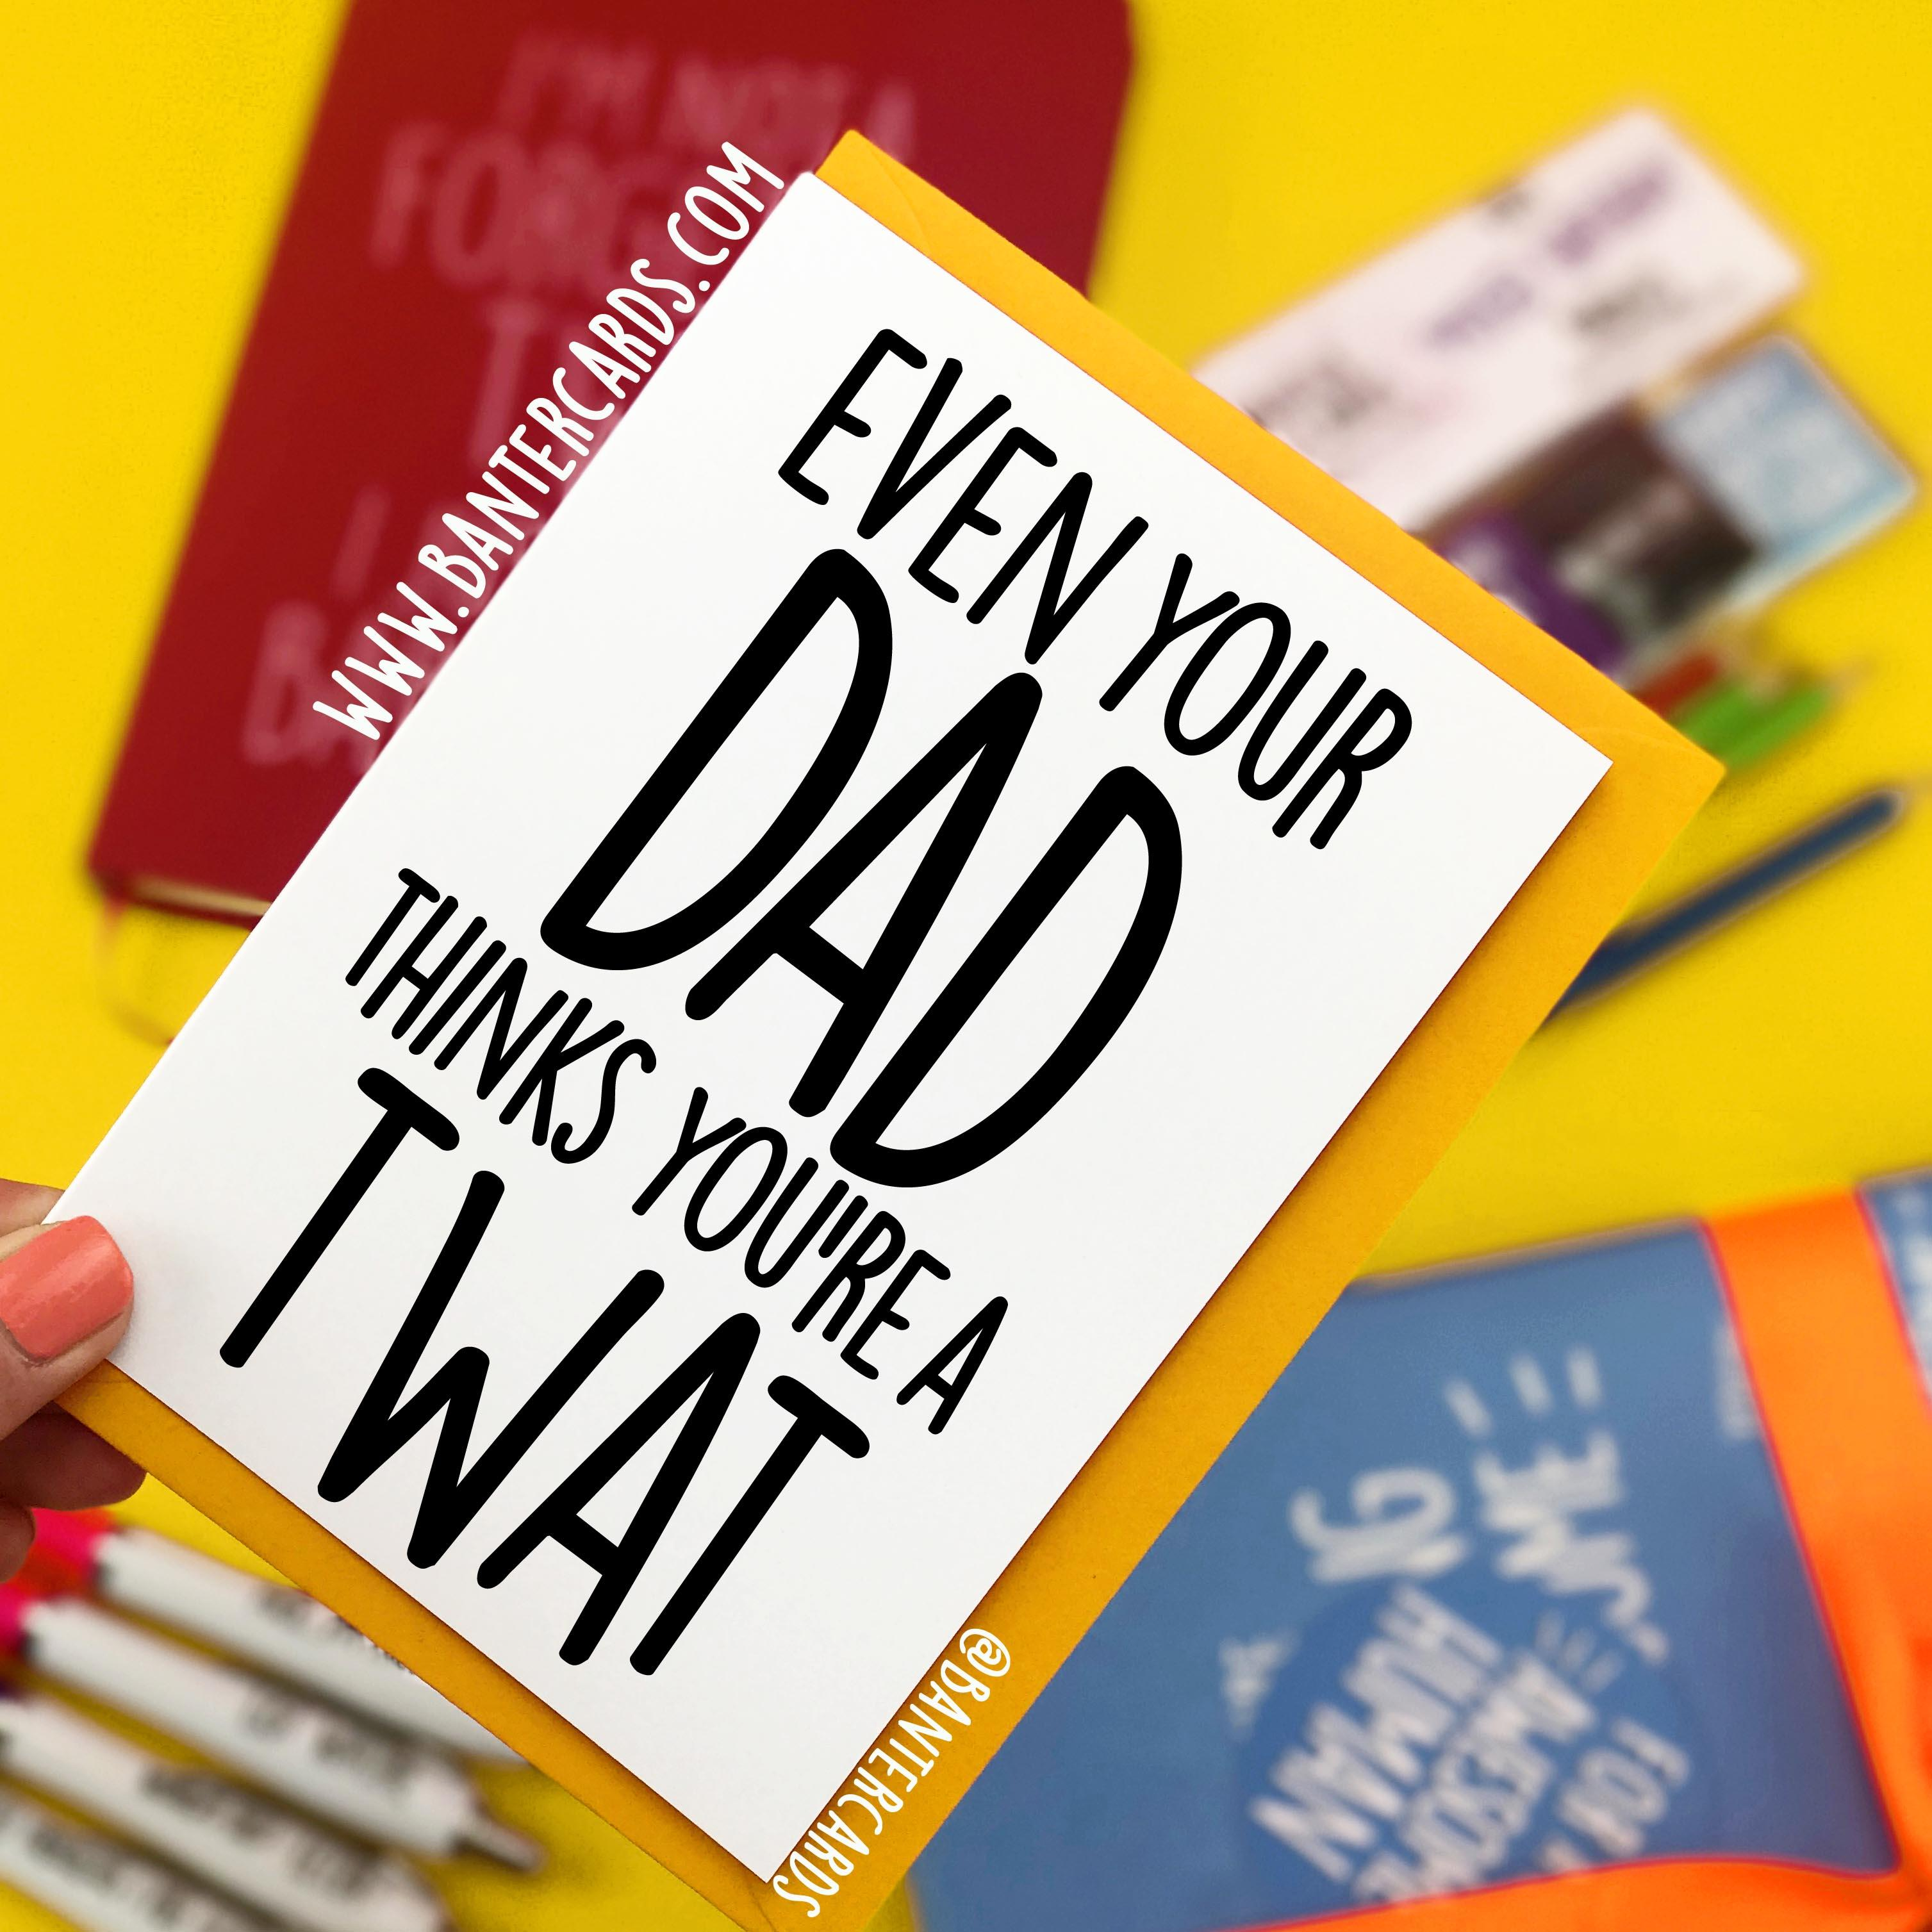 273e50433b0ef EVEN YOUR DAD THINKS YOU'RE A TWAT - FUNNY CARDS